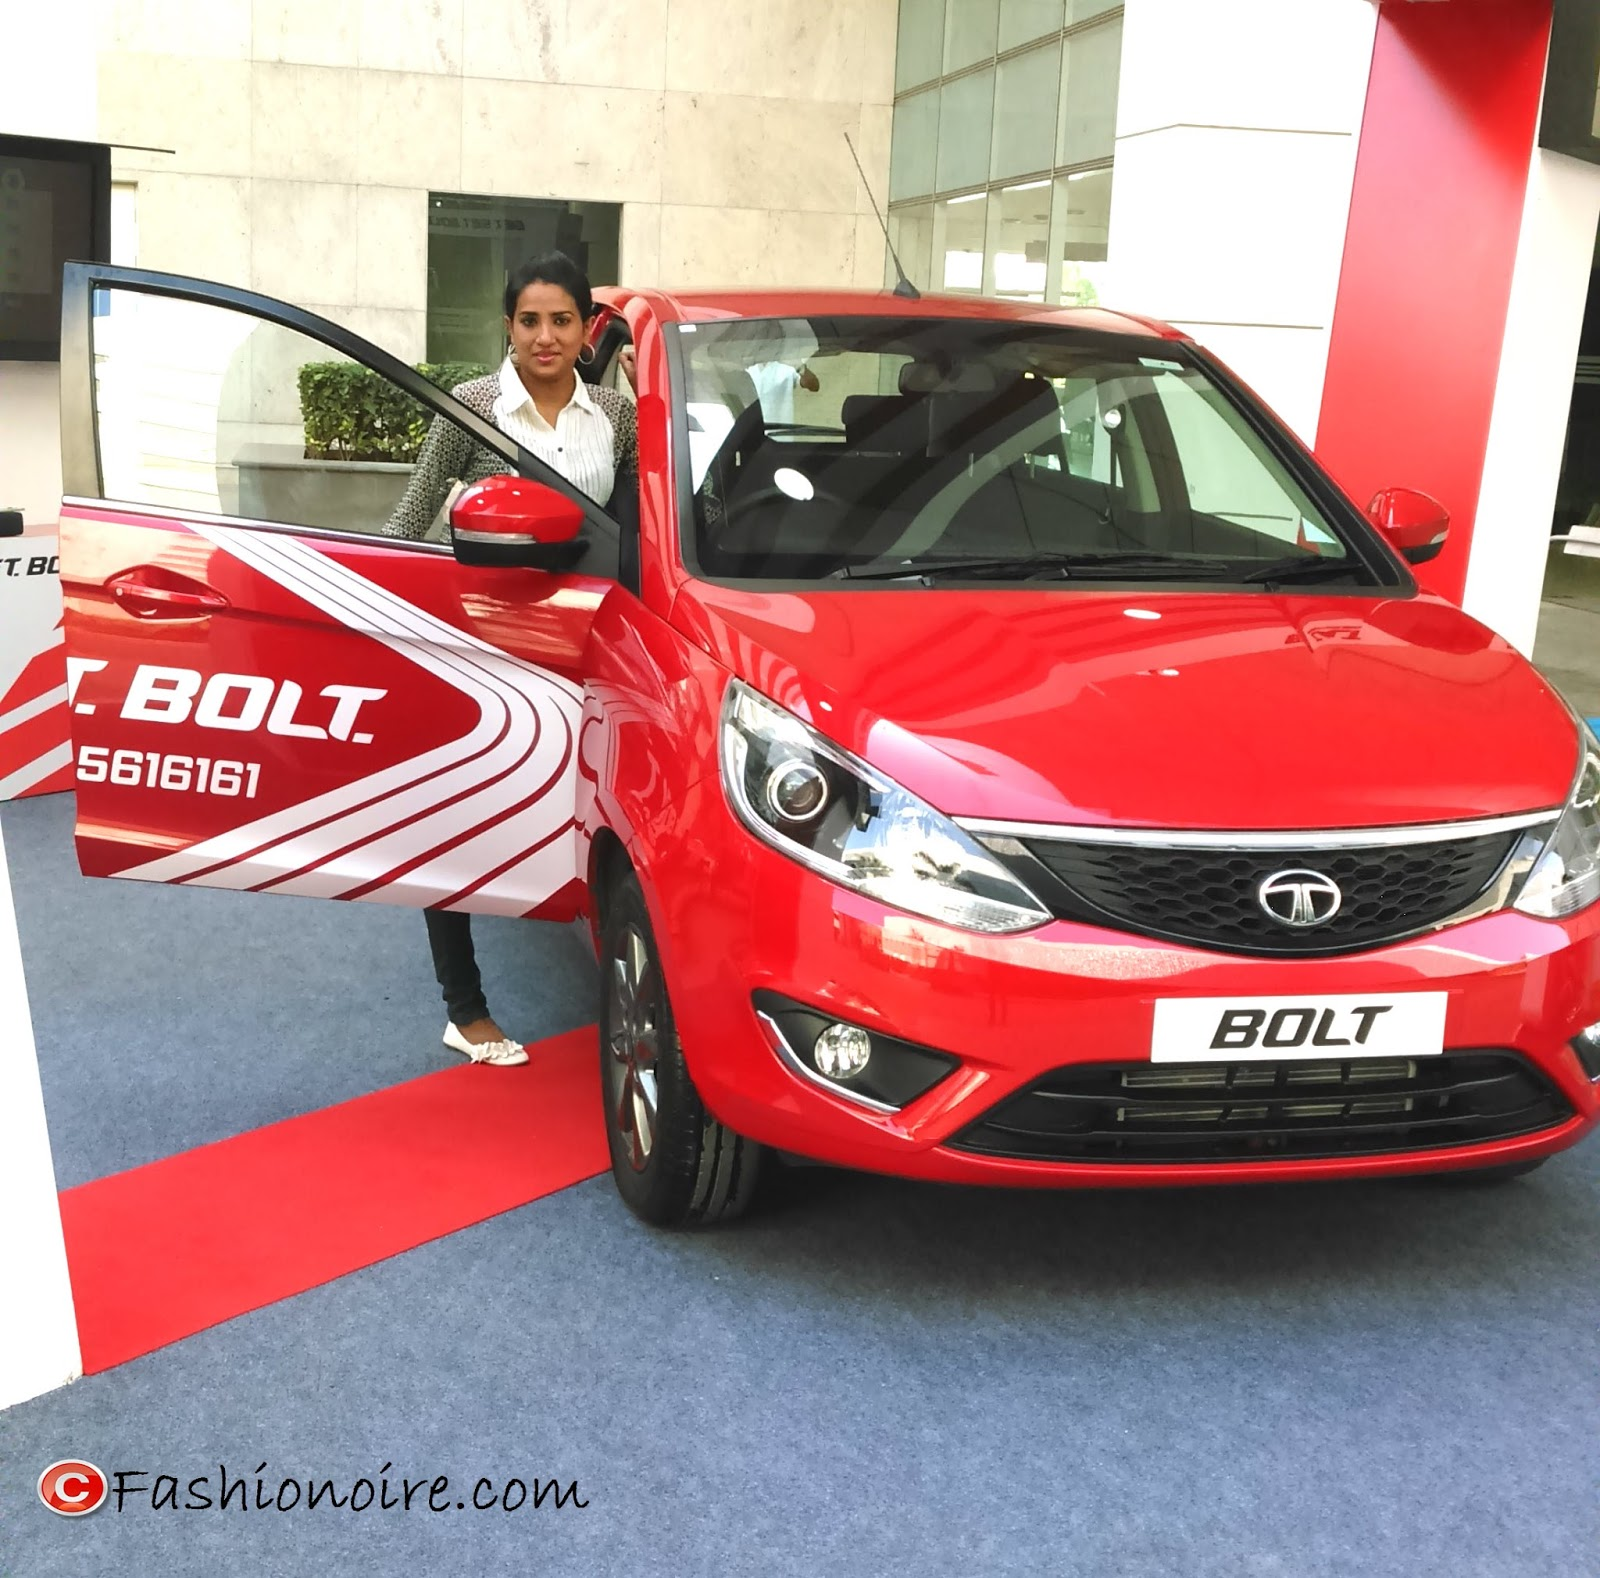 Get Set Bolt with new Tata Bolt-Honest review